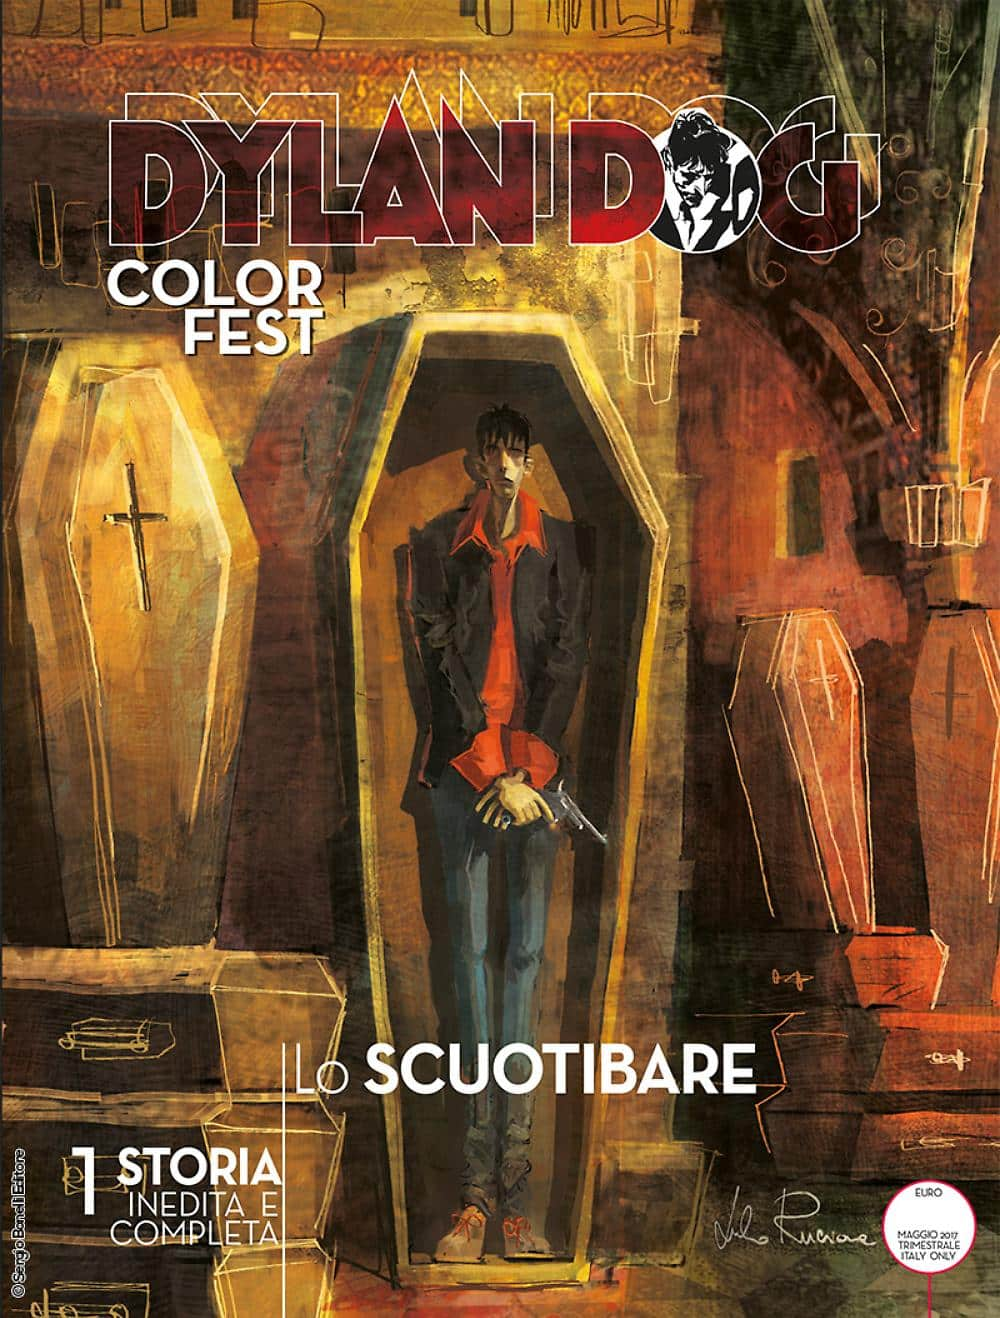 Dylan Dog Color Fest #21 - Lo Scuotibare: la potenza del surreale